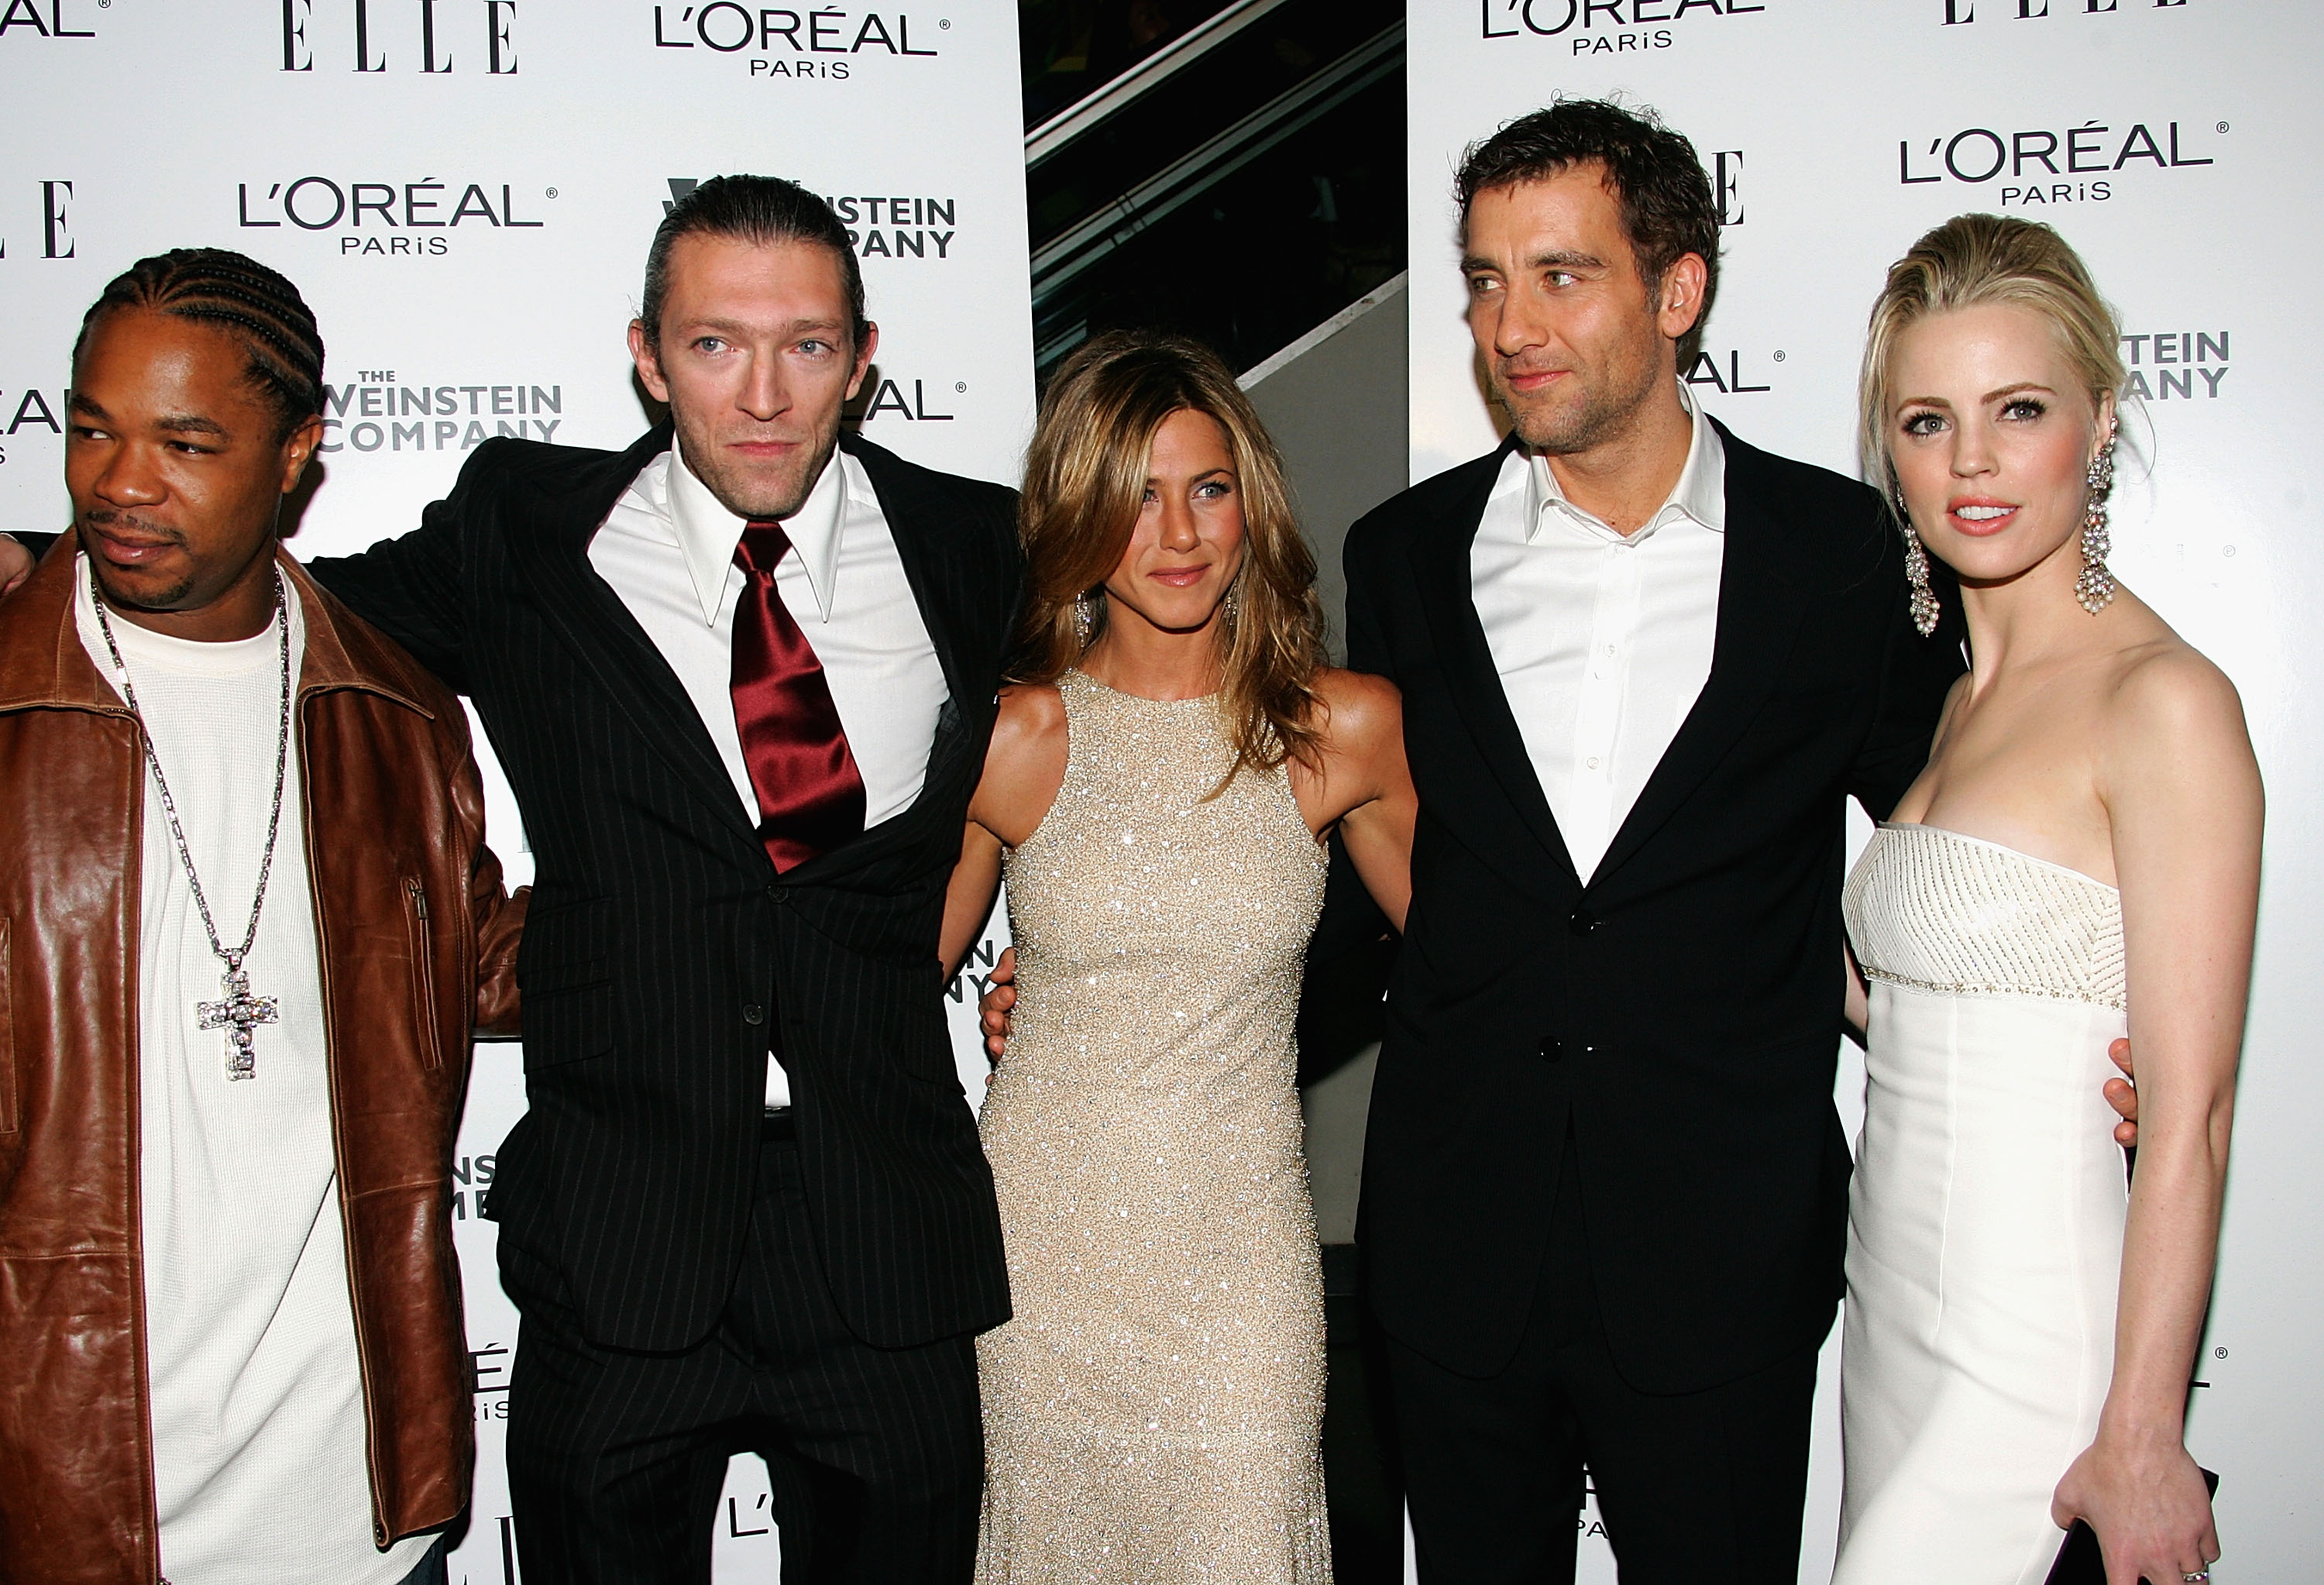 Photo of Clive Owen & his friend actress  Jennifer Aniston - Los Angeles